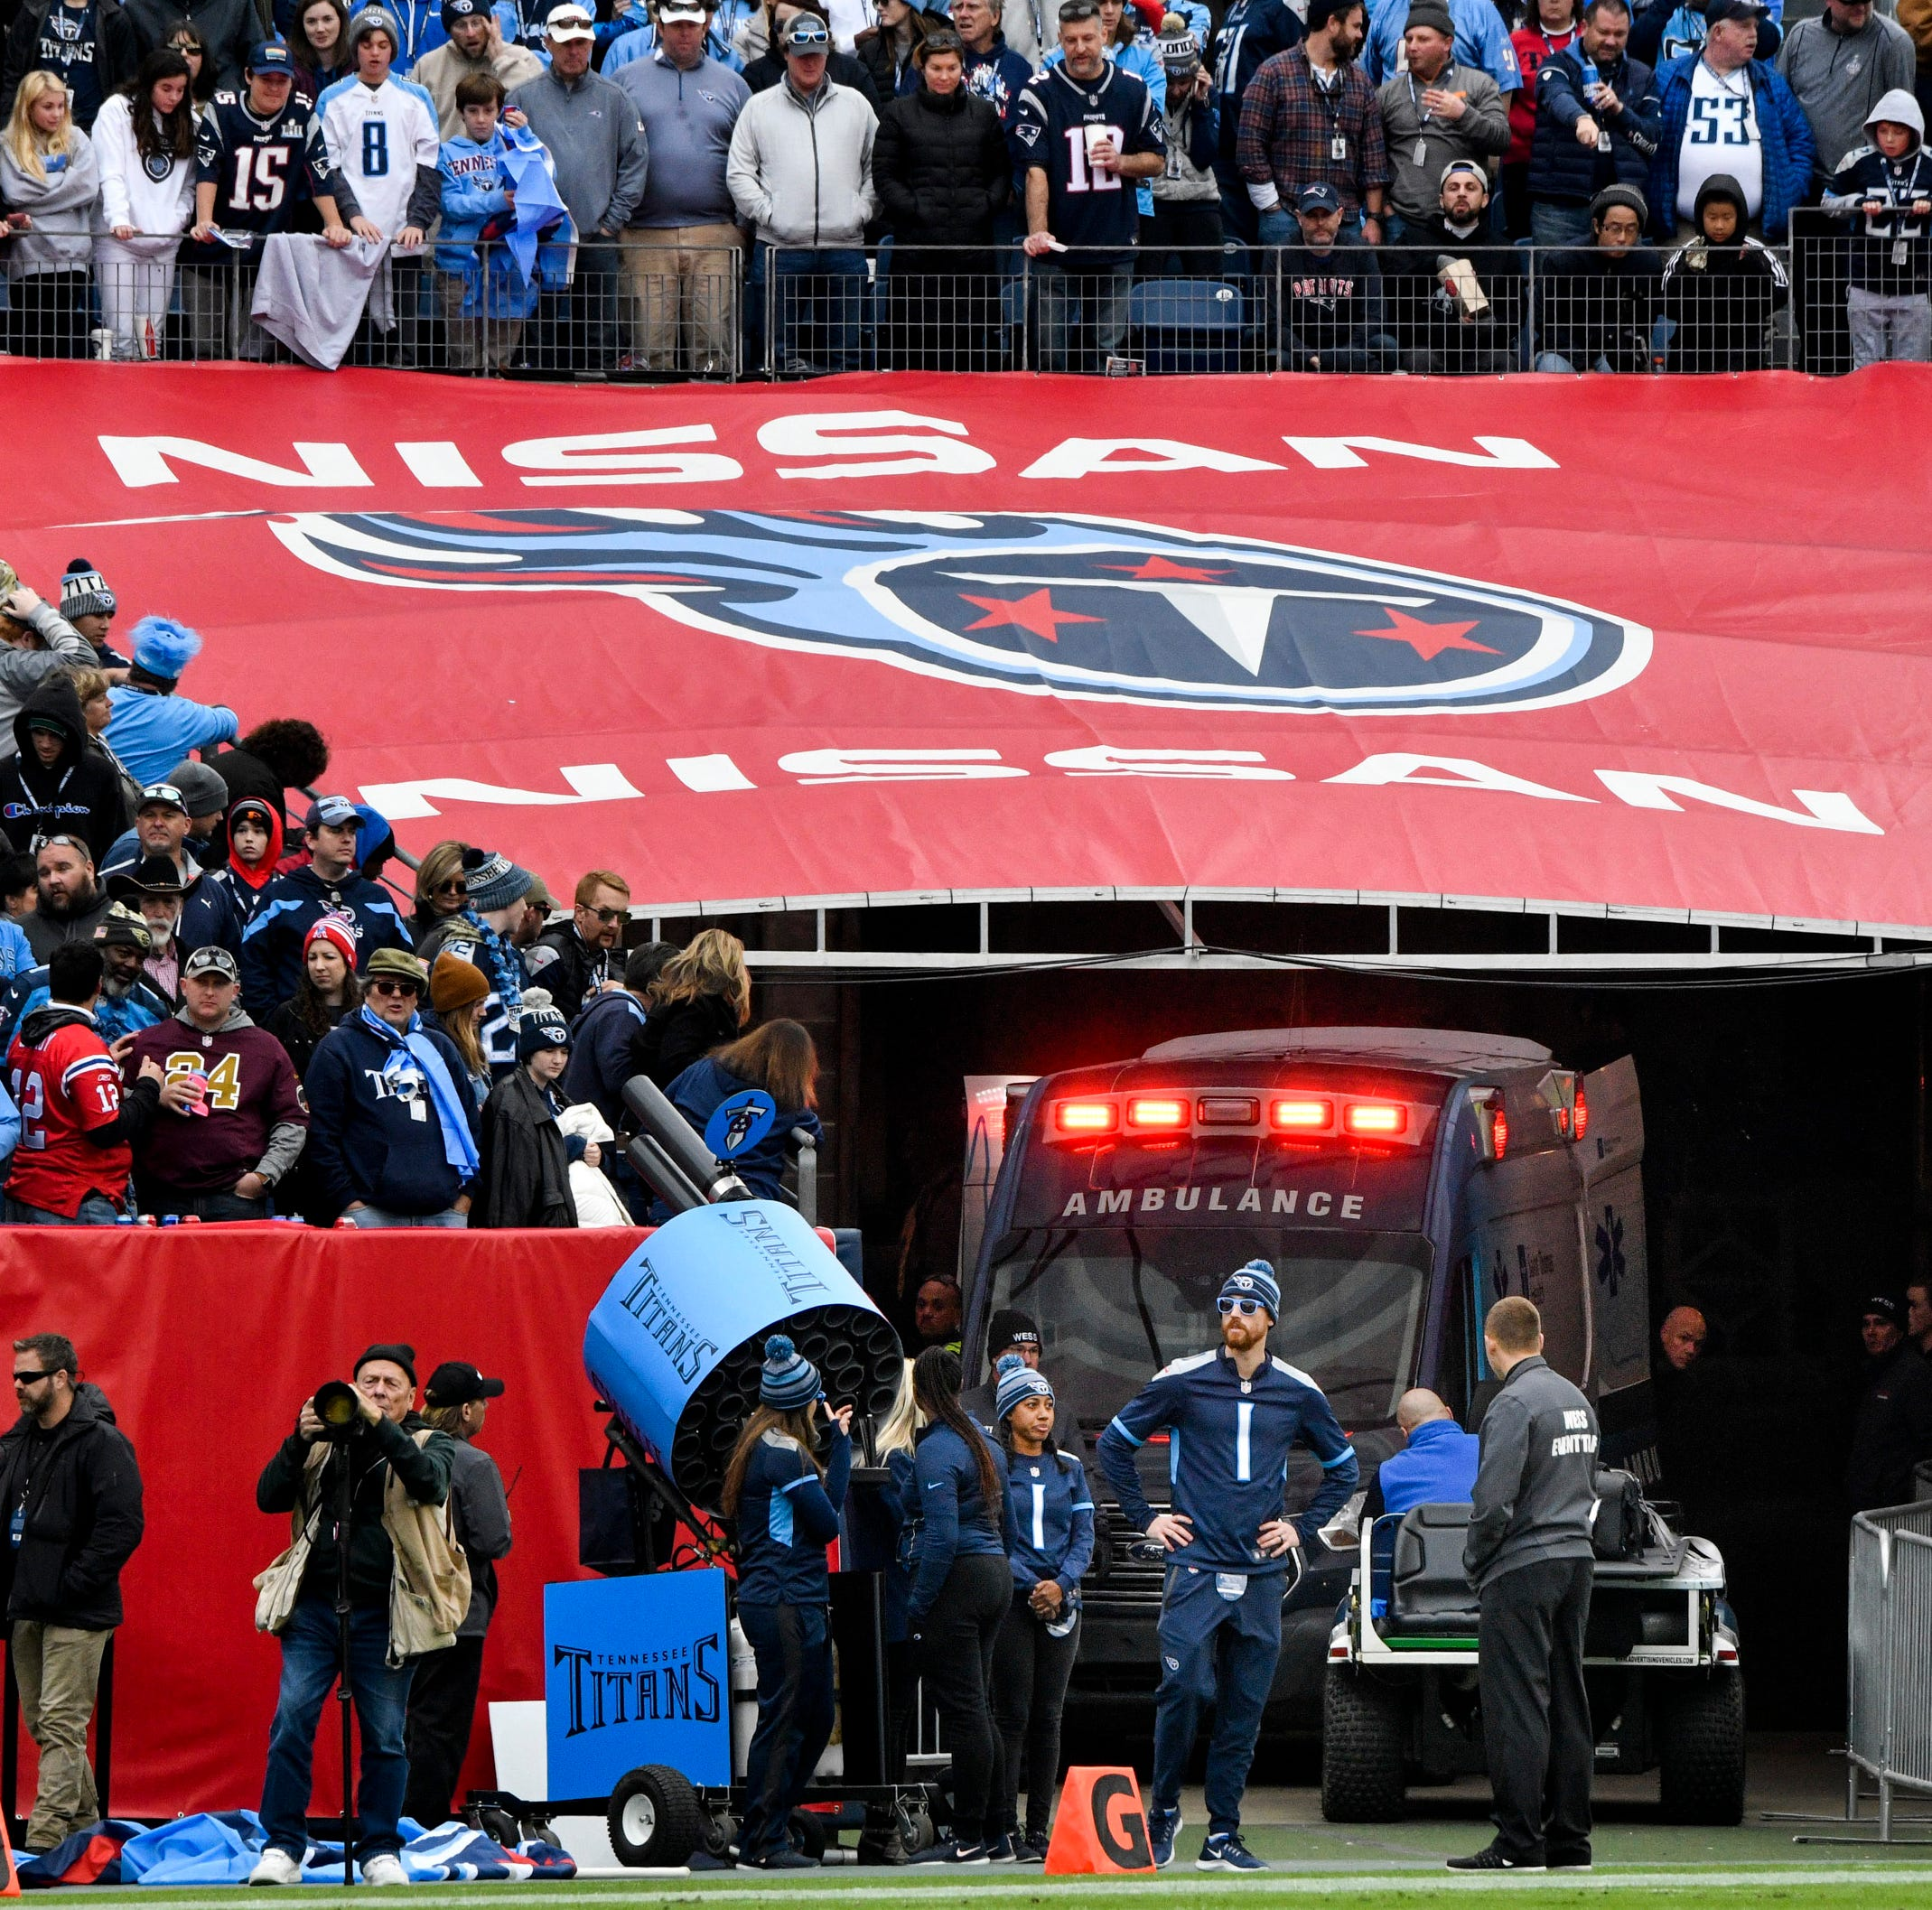 Condition improves for fan who fell during Titans-Patriots game at Nissan Stadium